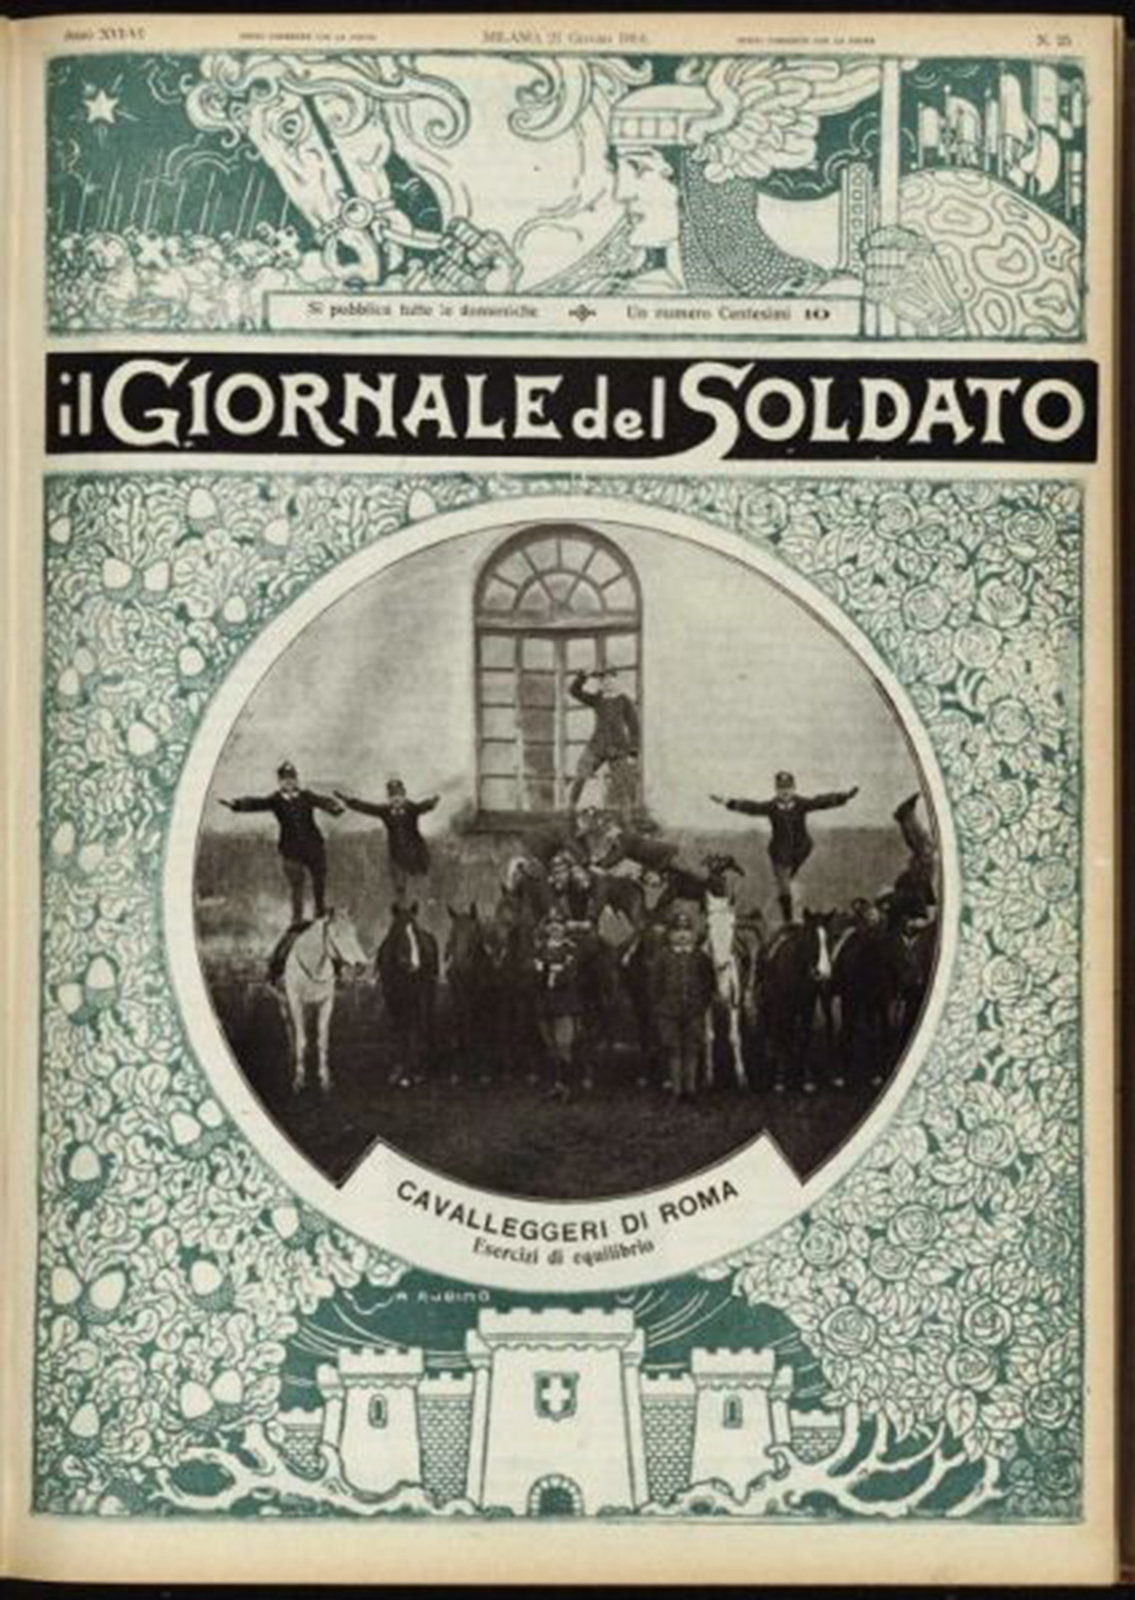 Soldiers have practiced feats, 1914 Il giornale del soldato, Istituto centrale per il catalogo unico, In Copyright